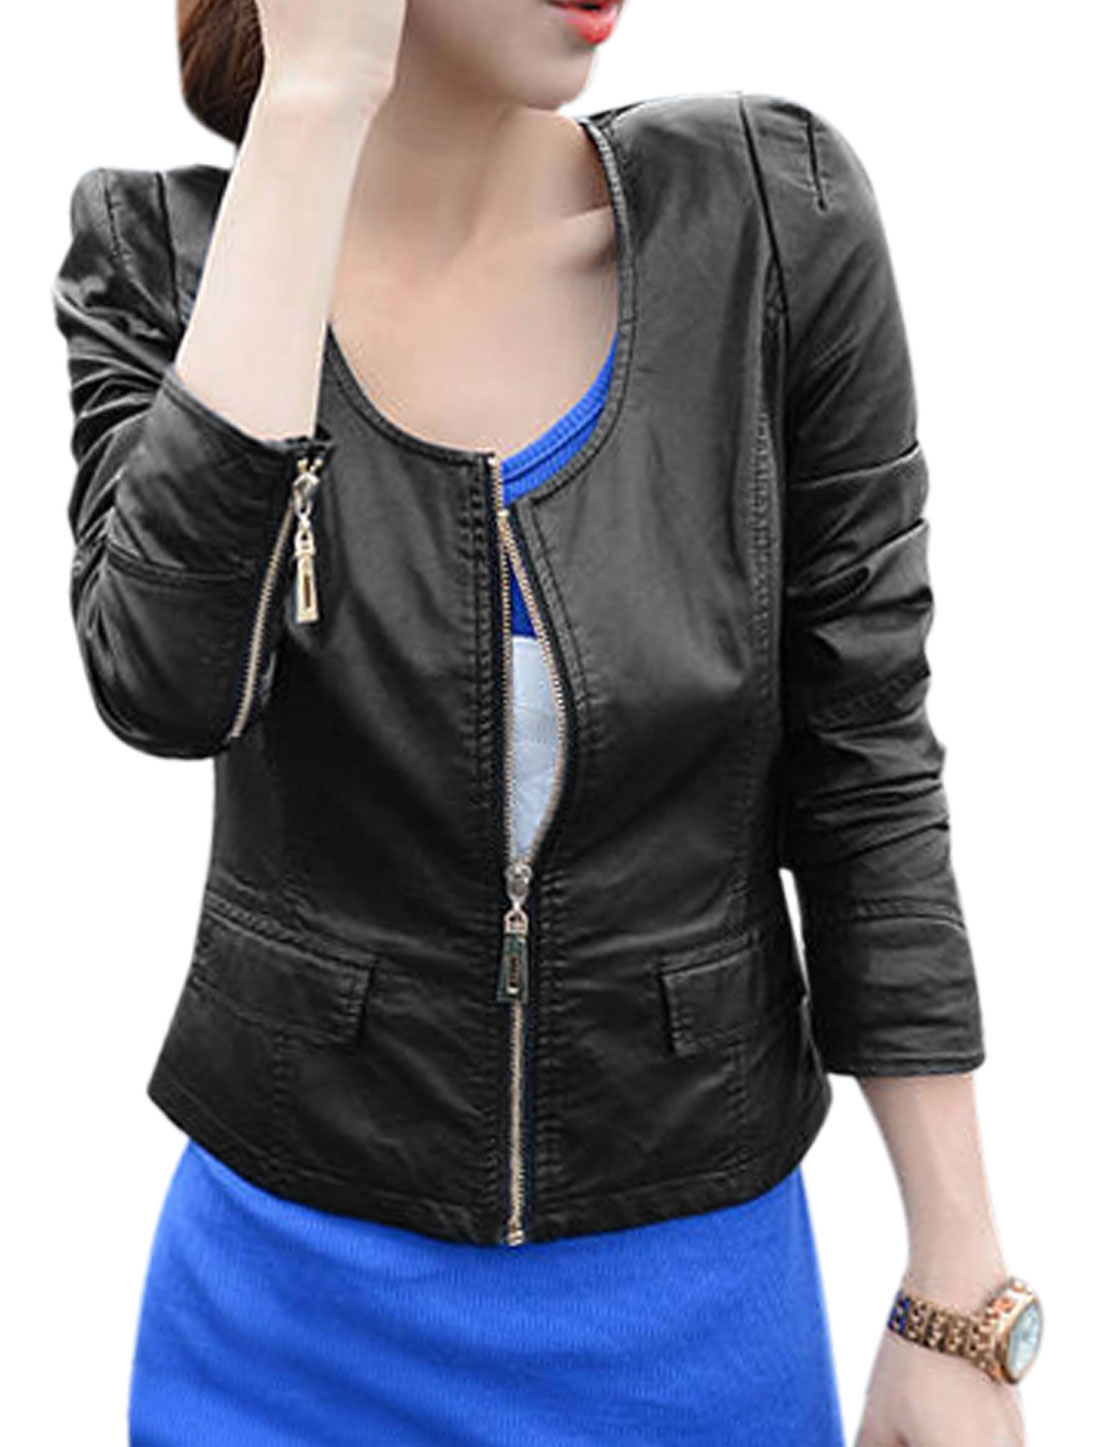 Lady Zip Up Two Flap Pockets Slim Fit Imitation Leather Jacket Black M